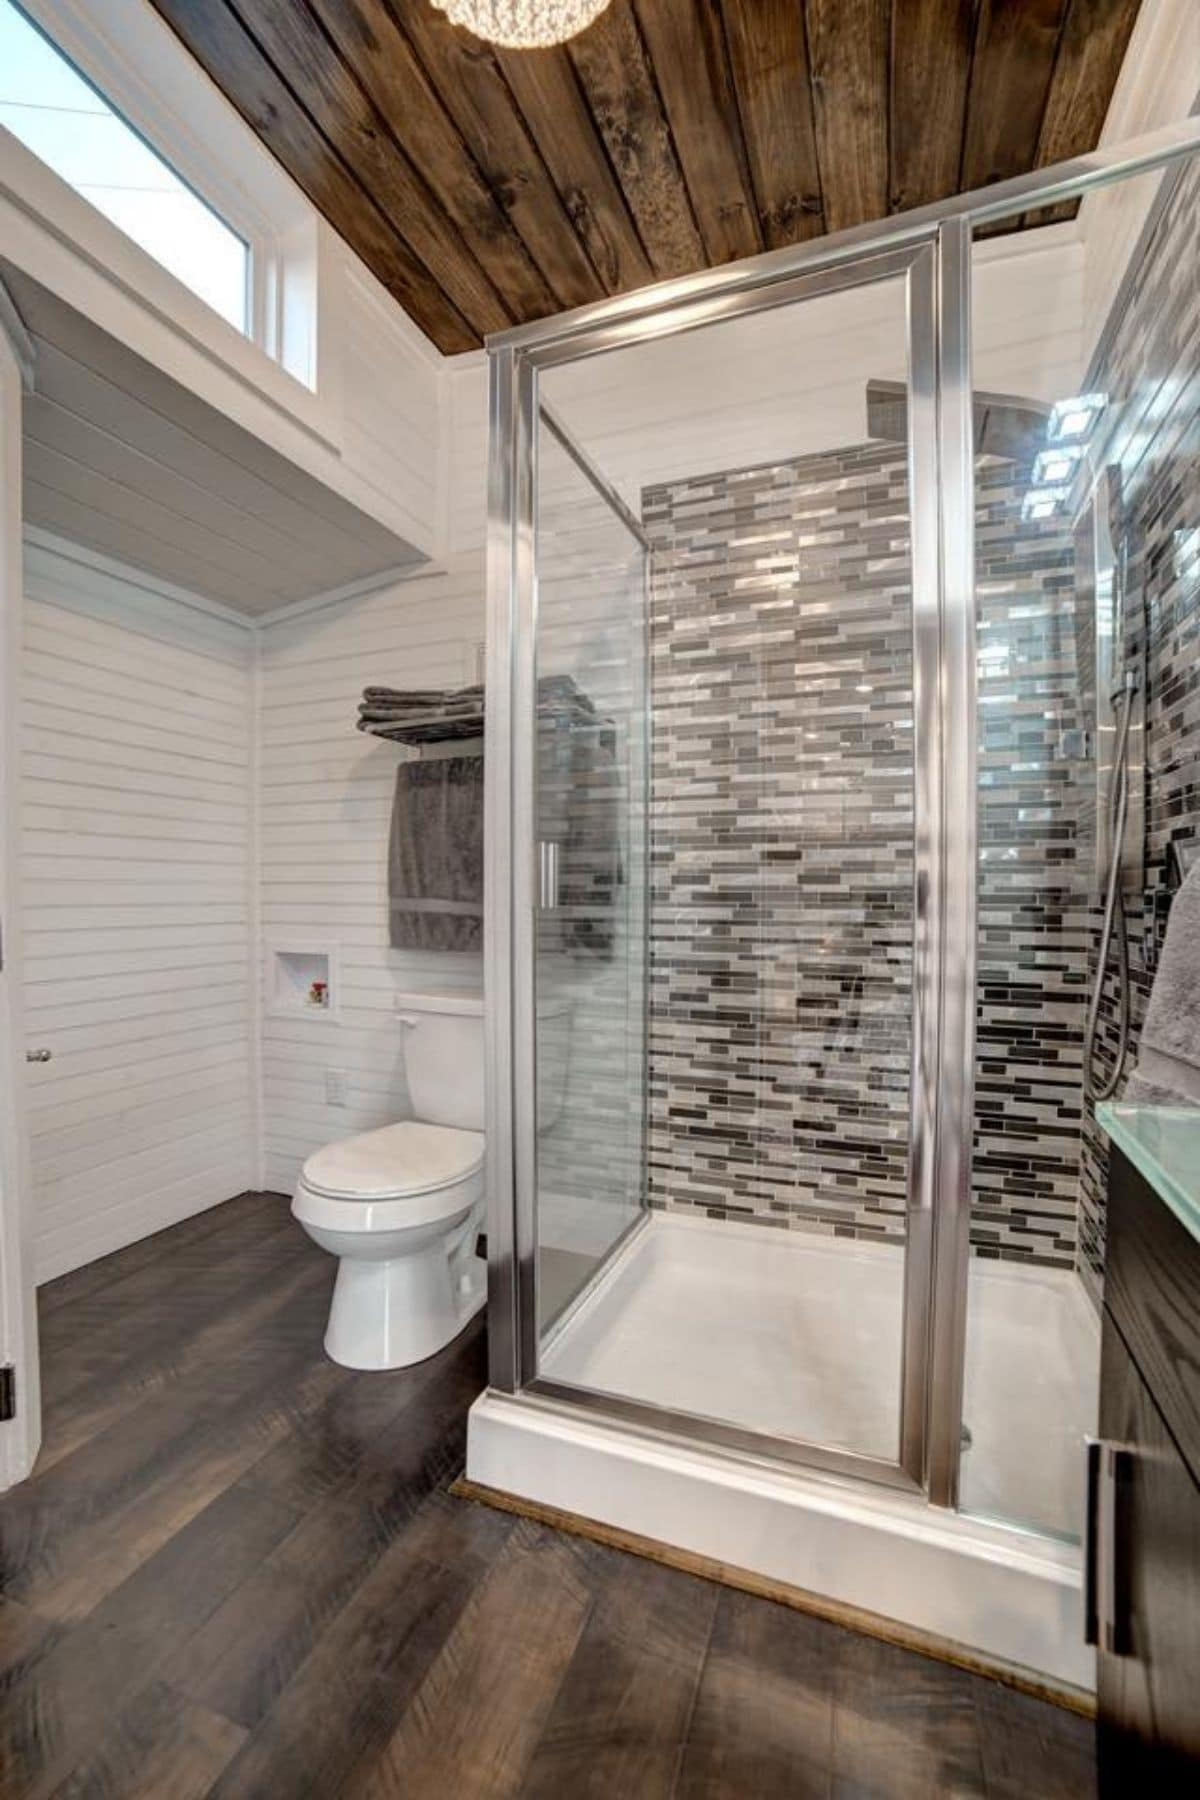 Bathroom with large tiled shower and white toilet